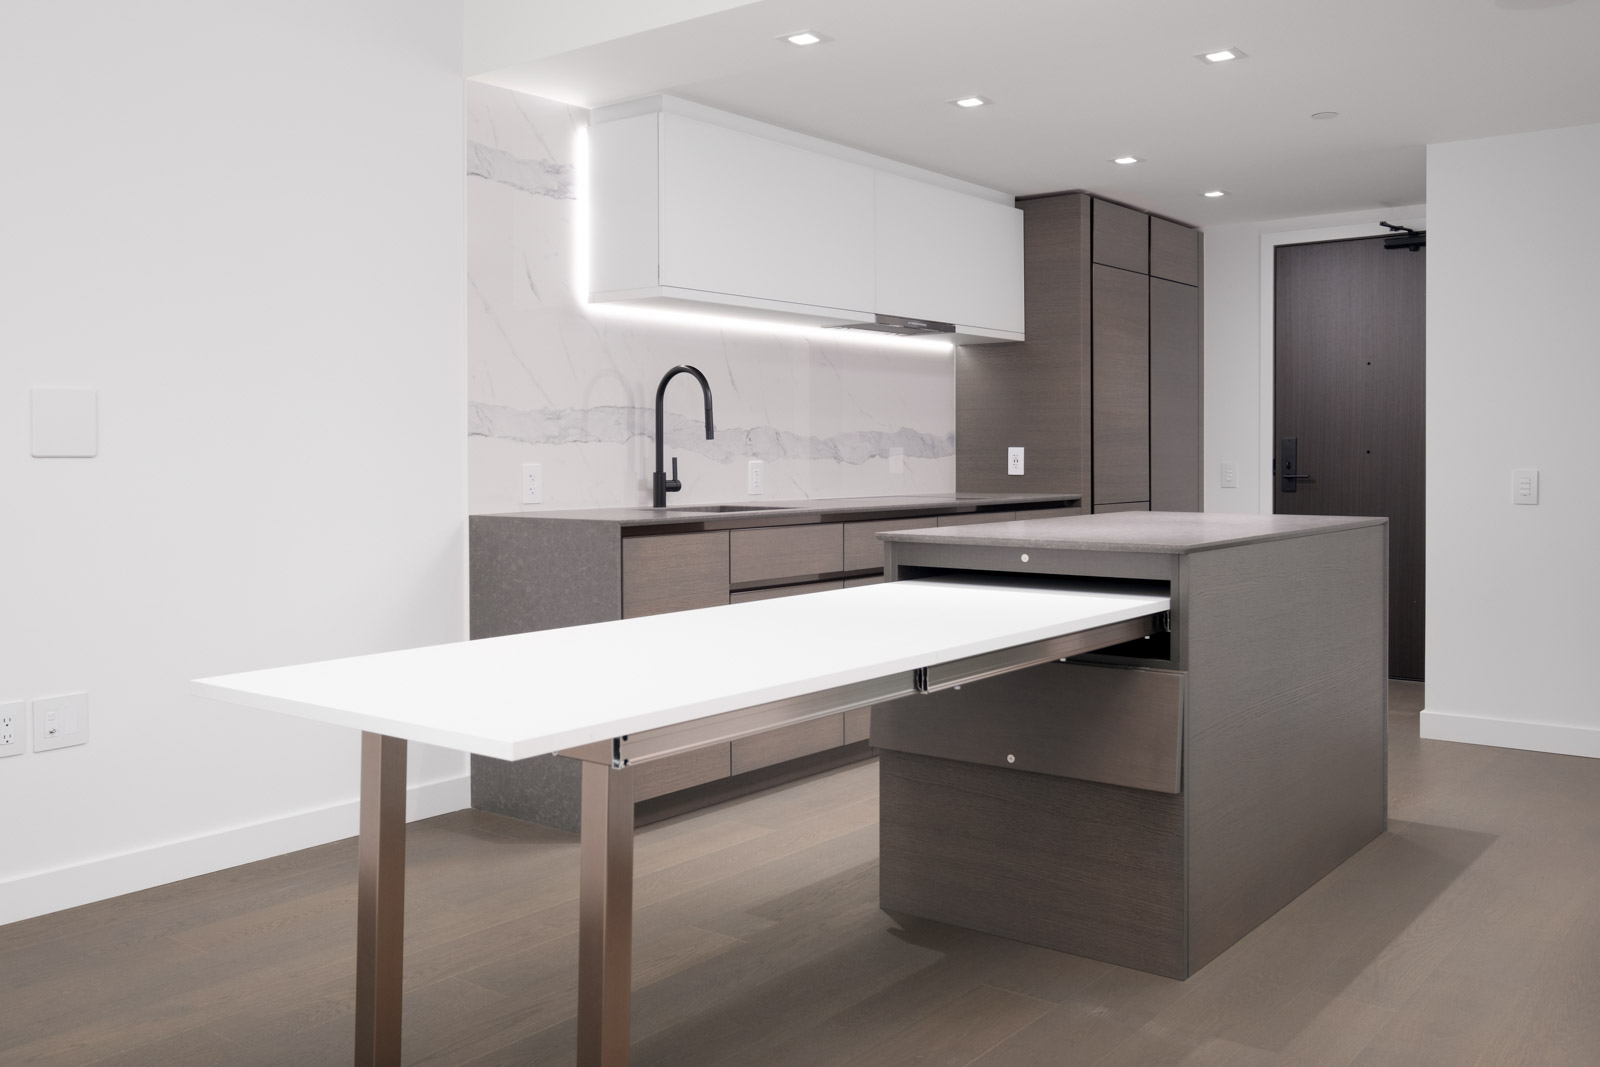 dining table extension from kitchen island in rental condo at cardero in coal harbour neighbourgood of vancouver